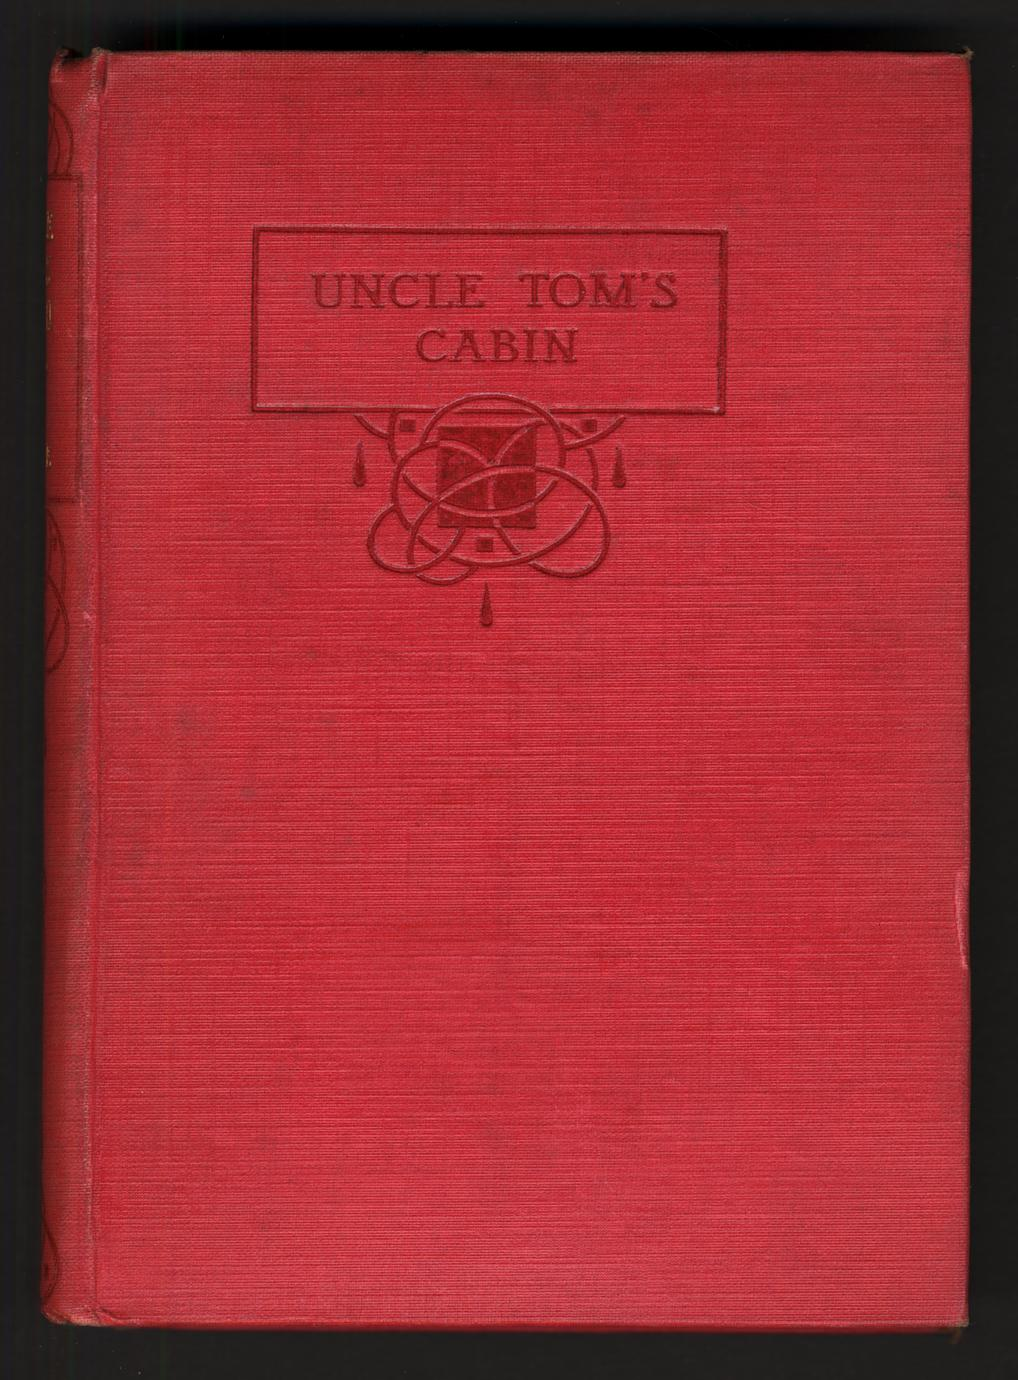 Uncle Tom's cabin (1 of 2)